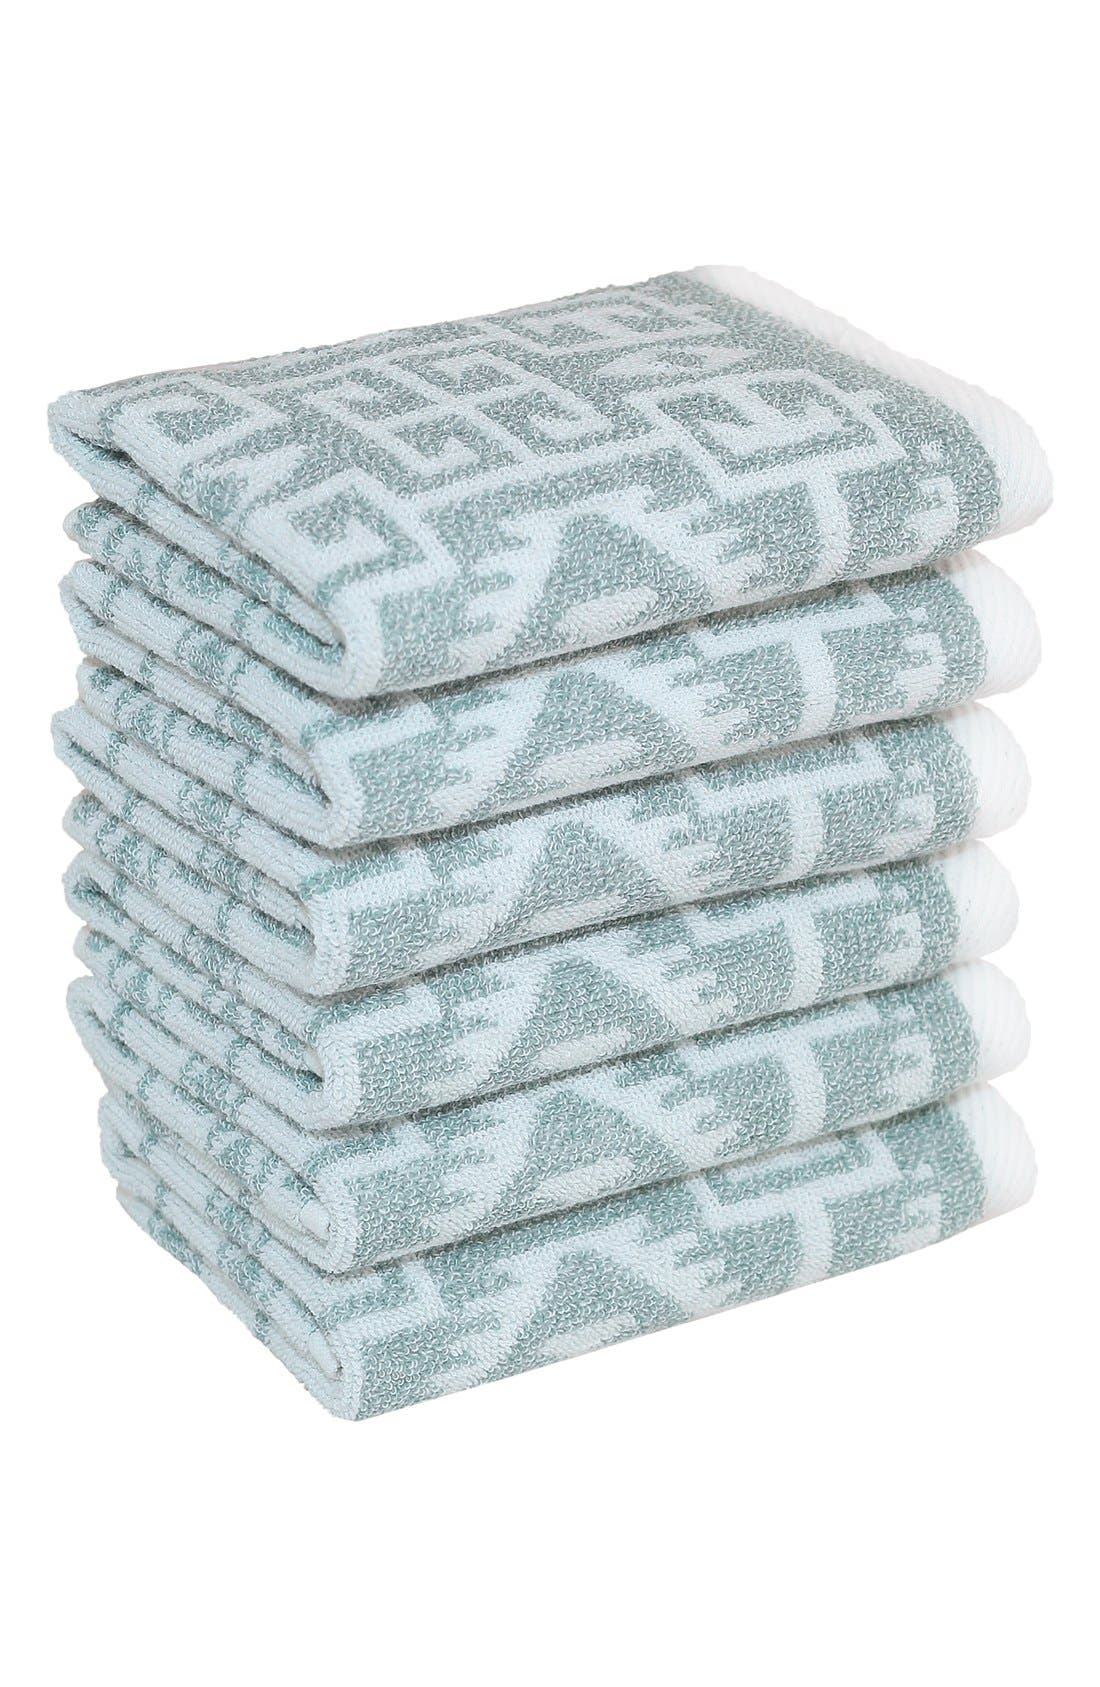 Linum 'Kula' Turkish Cotton Washcloths (Set of 6)